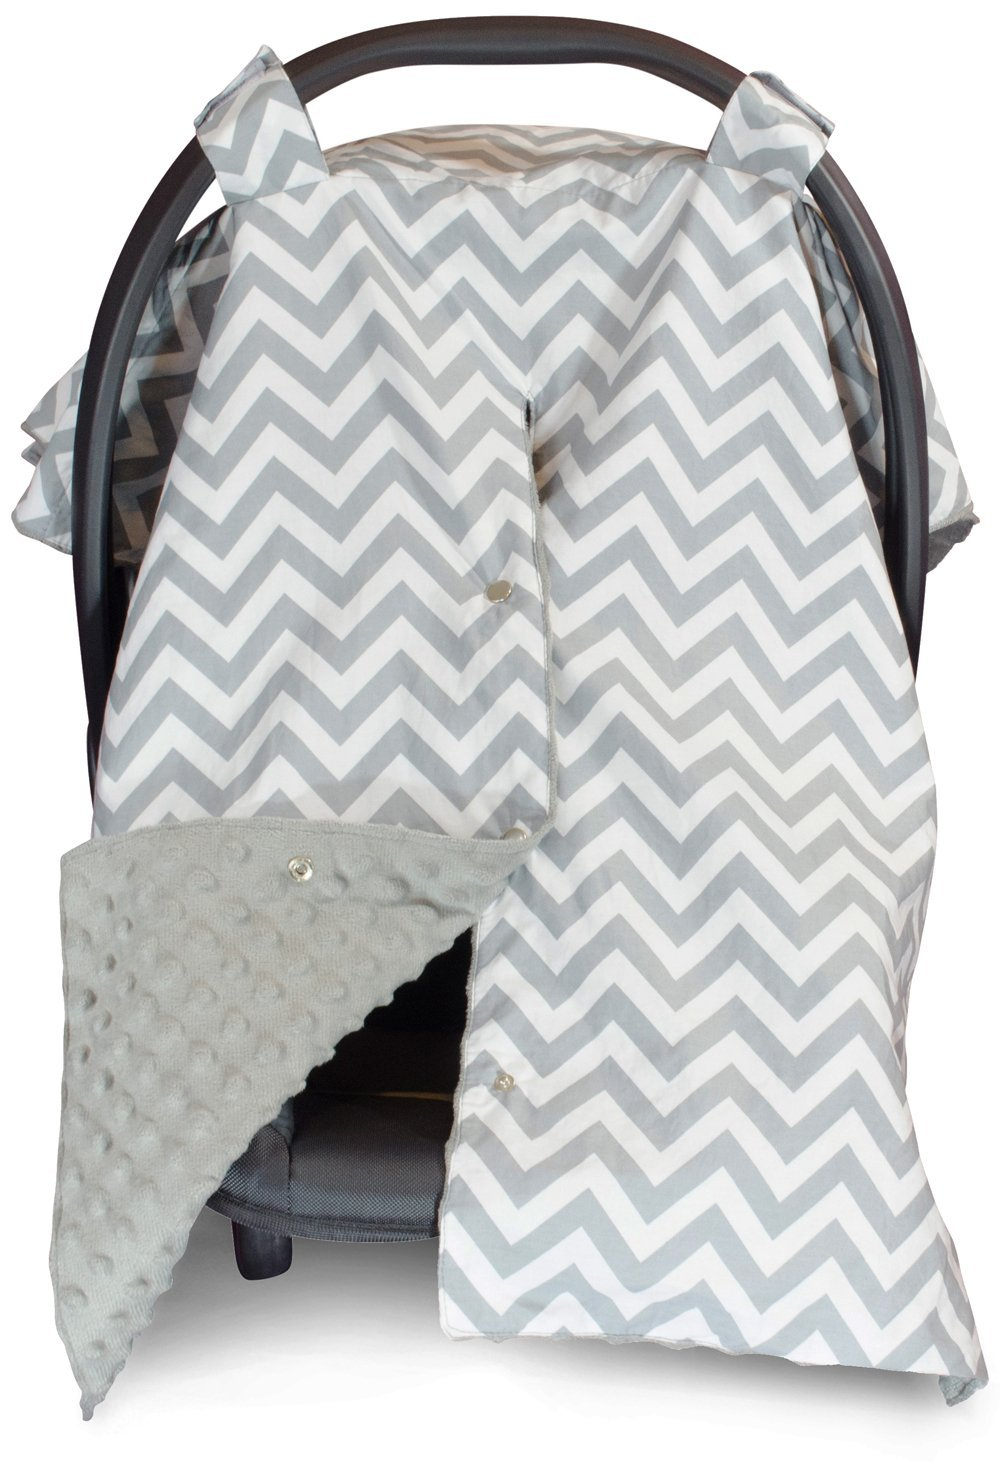 Baby Blanket Car Seat Pattern Sewing Patterns For Baby